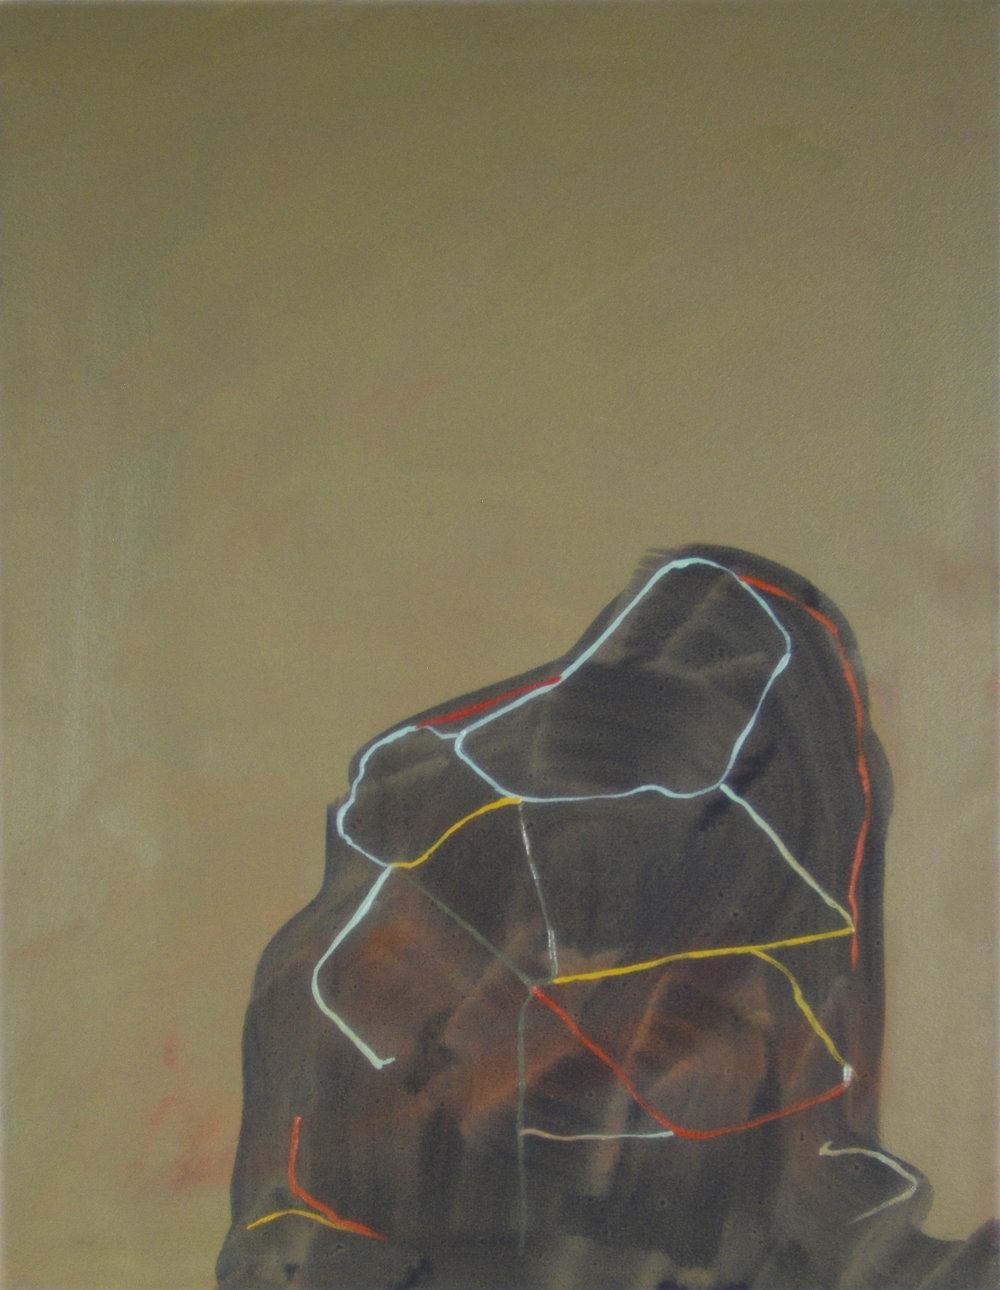 String, 2013, Oil on canvas, 40 x 30 cm